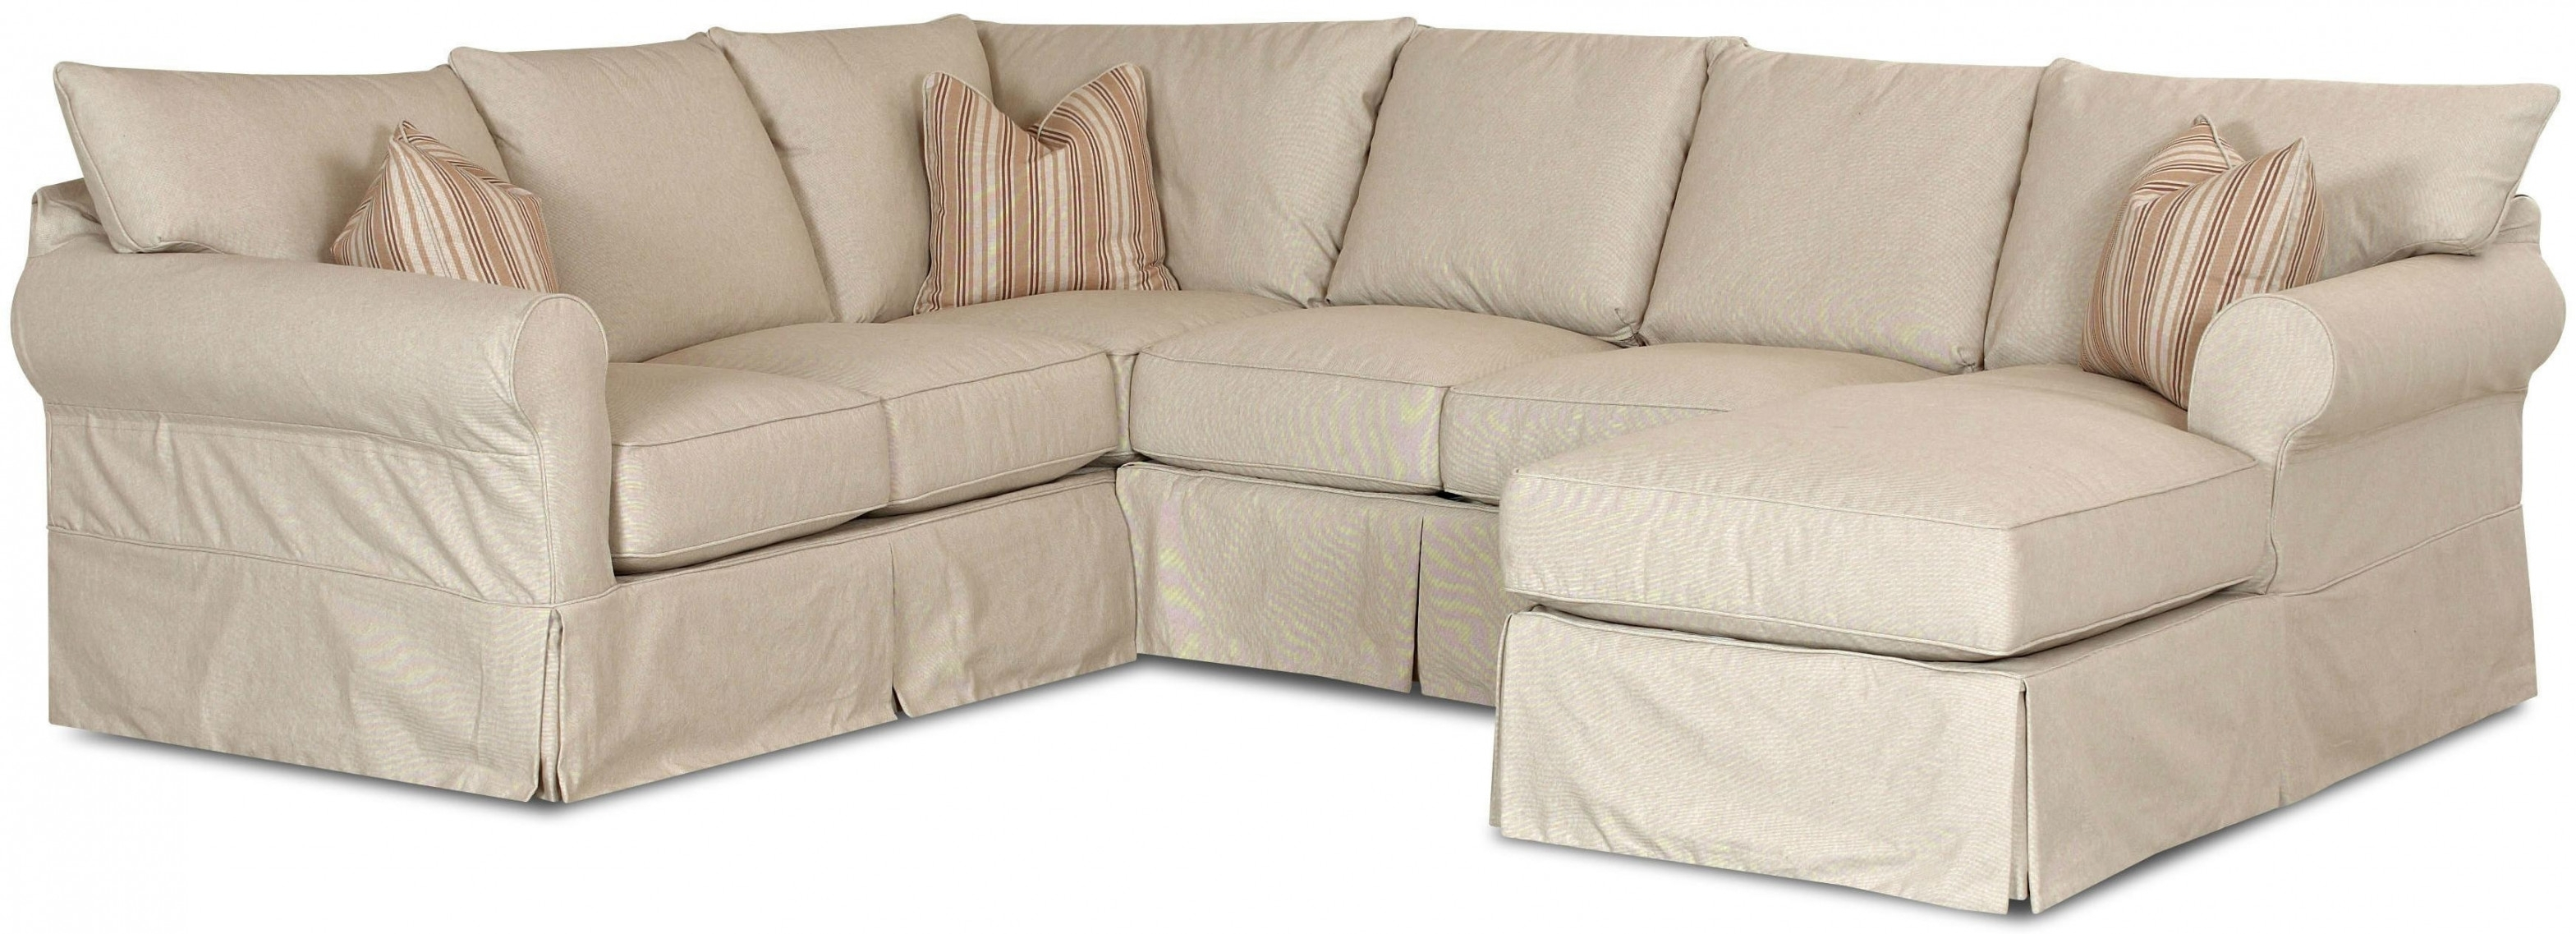 Furniture : Amazing 3 Piece Sectional Couch Covers Lovely Futon Regarding Sectional Sofas With Covers (View 4 of 10)